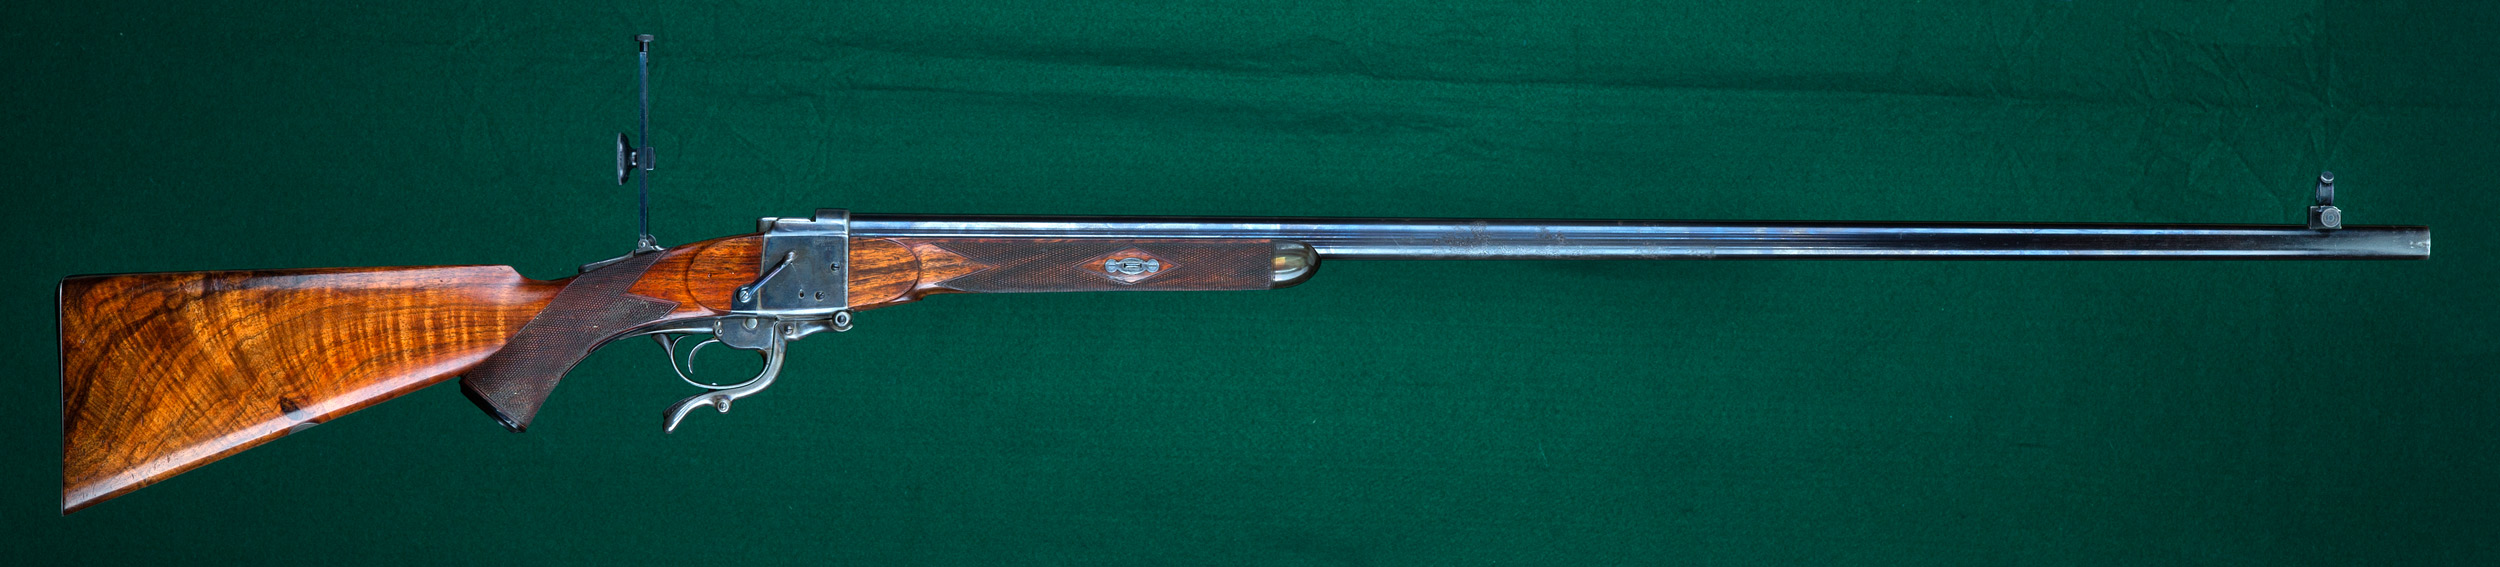 Original Gibbs-Farquharson rifle with heavy Metford barrel chambered for the 461 Gibbs No. 2. (Picture courtesy hallowellco.com).